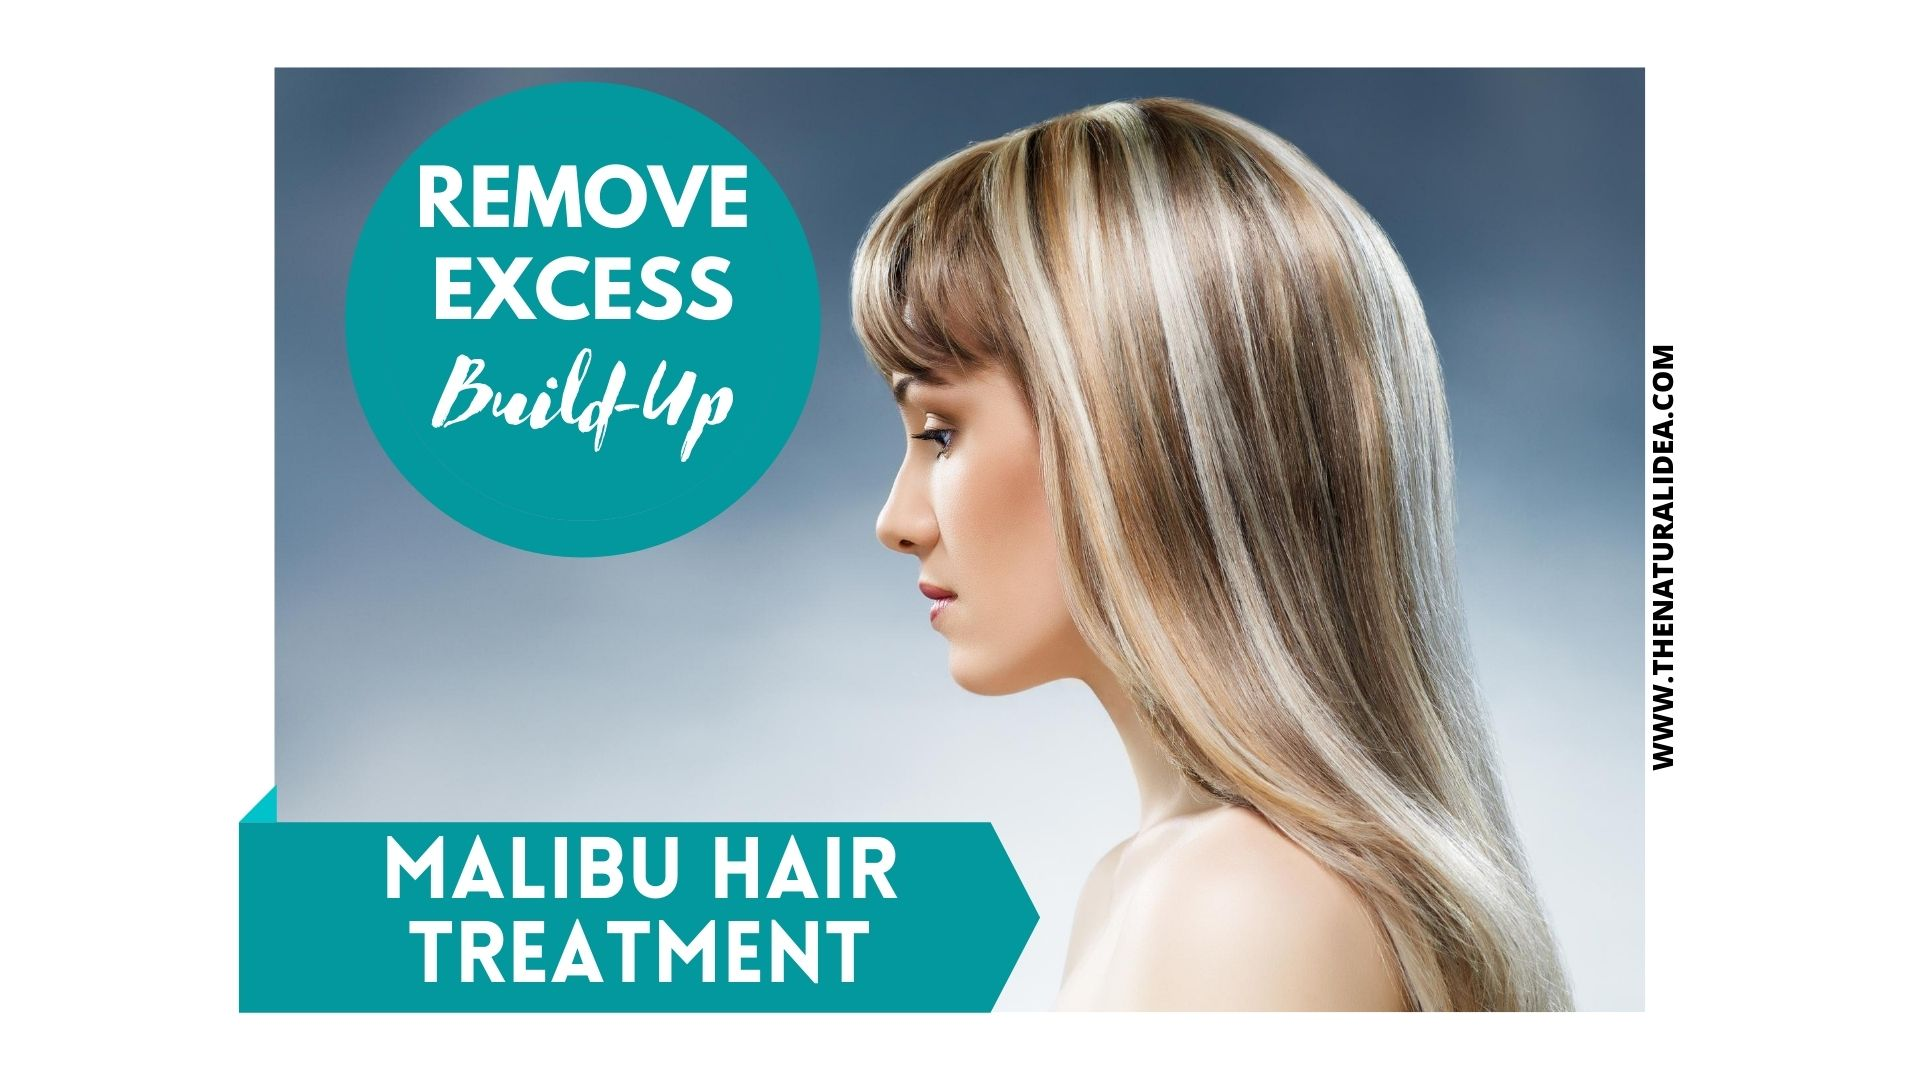 What is a Malibu Hair Treatment